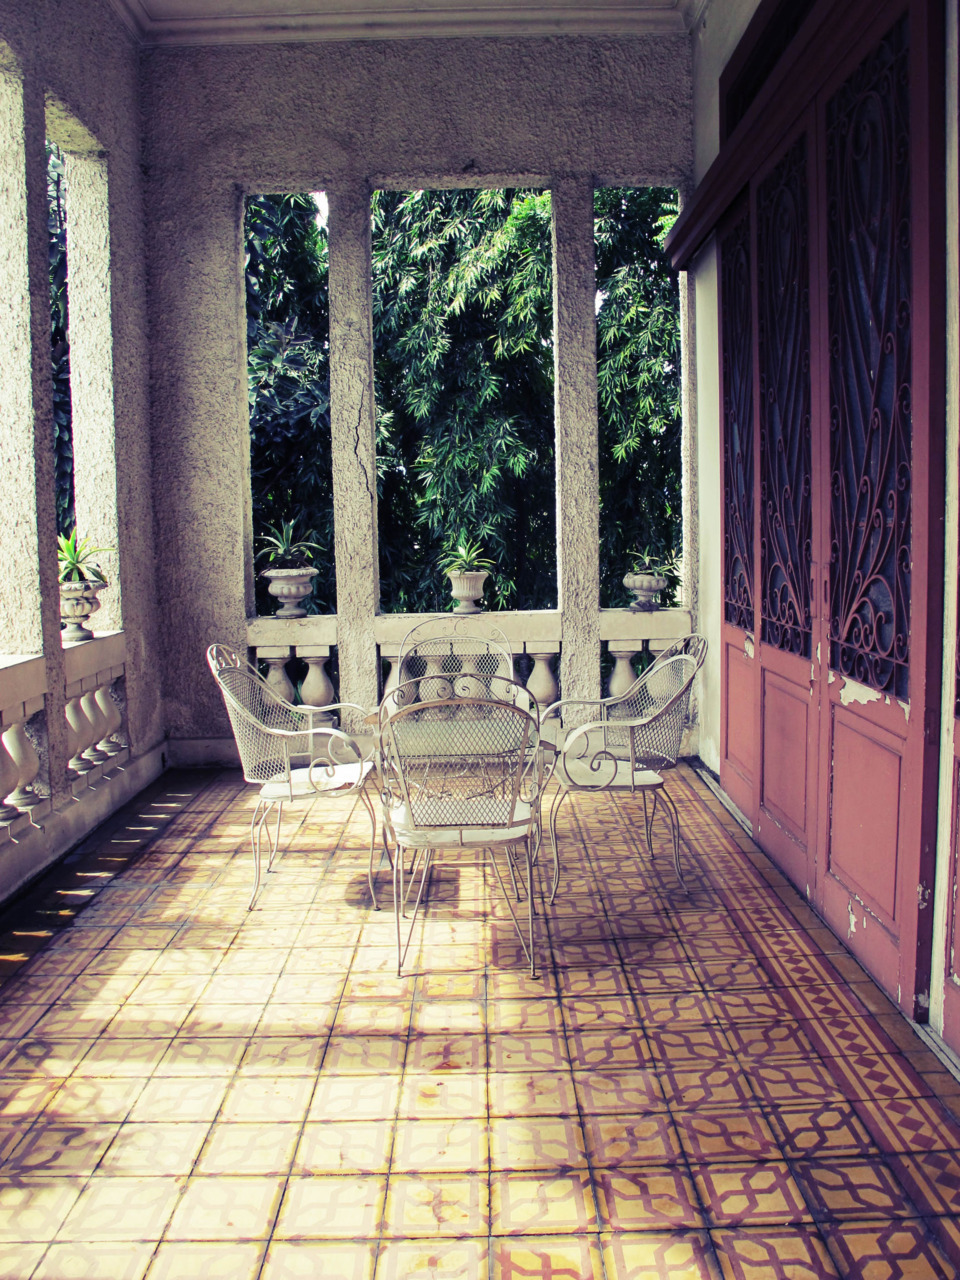 Sitting Area outside the house in Sariaya, Quezon